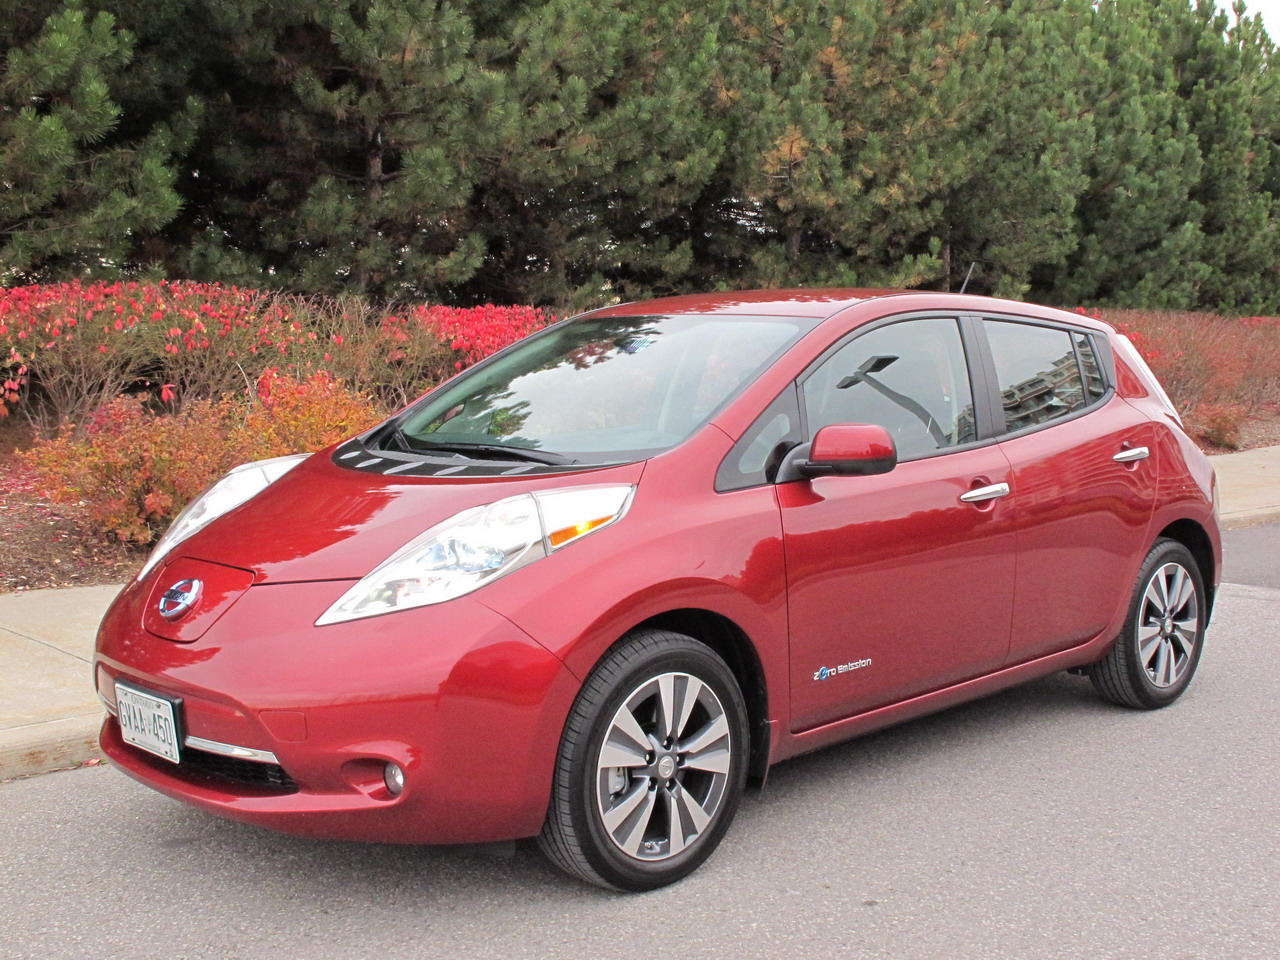 2015 Nissan LEAF Red front side view